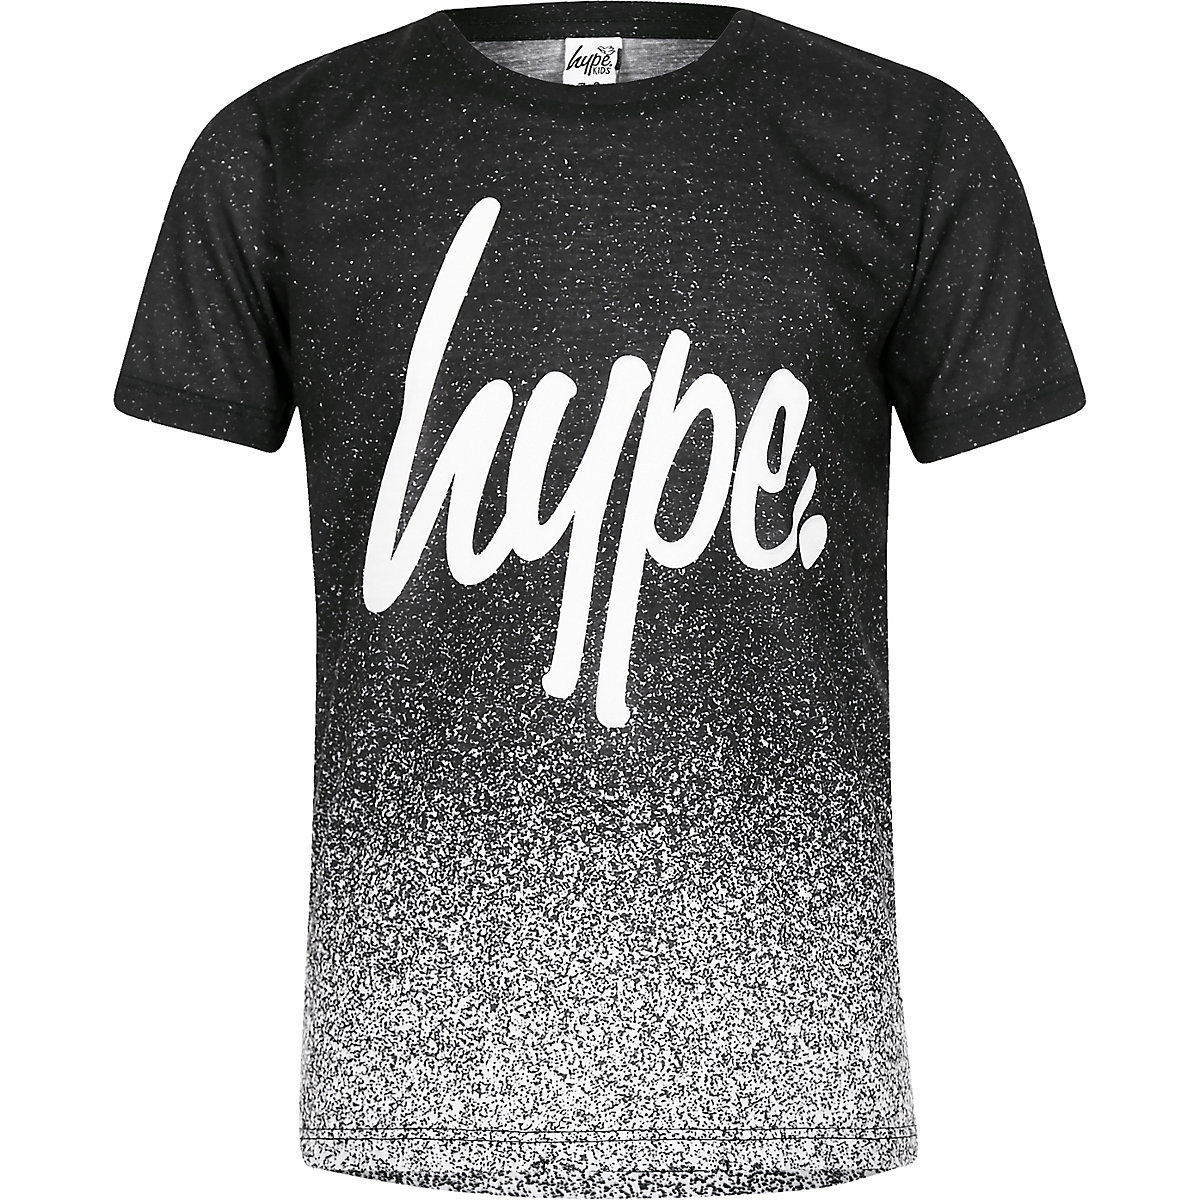 Boys Hype black speckled T-shirt